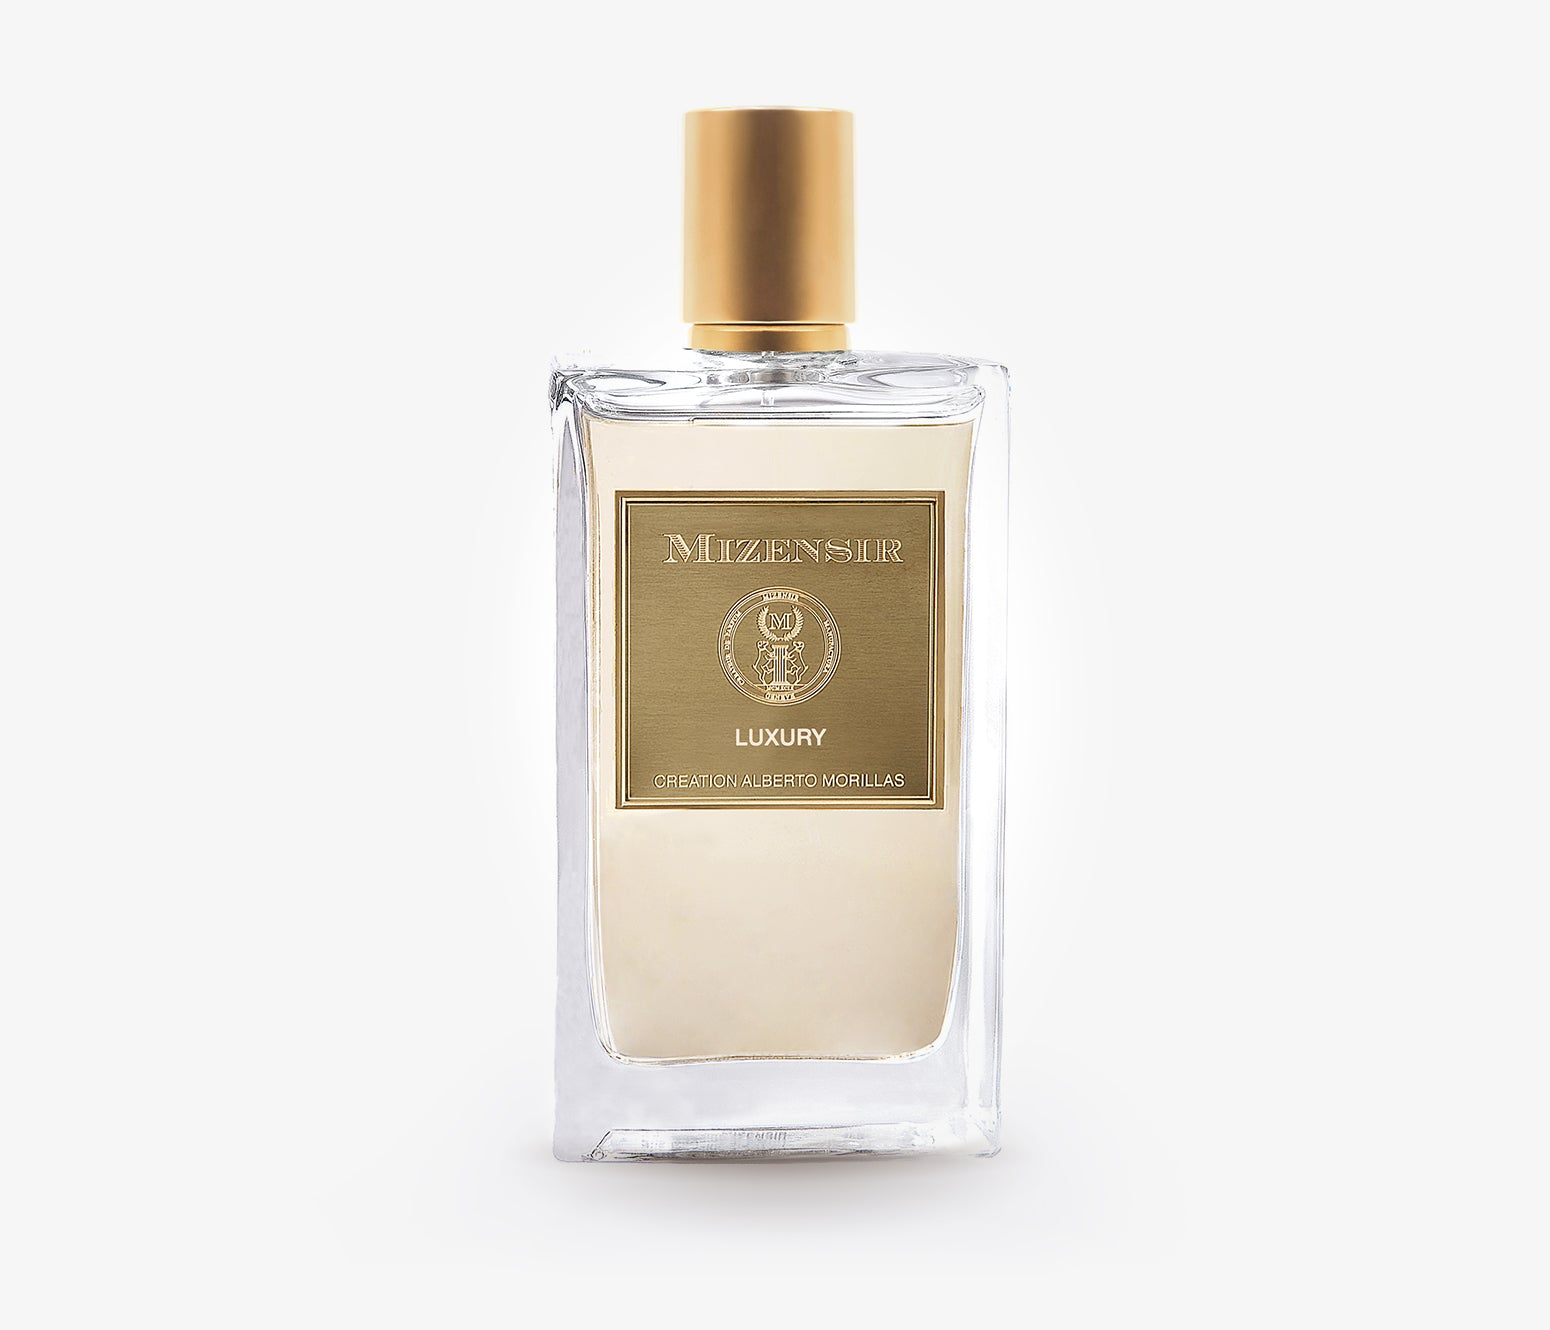 Mizensir - Luxury - 100ml - WIA001 - product image - Fragrance - Les Senteurs